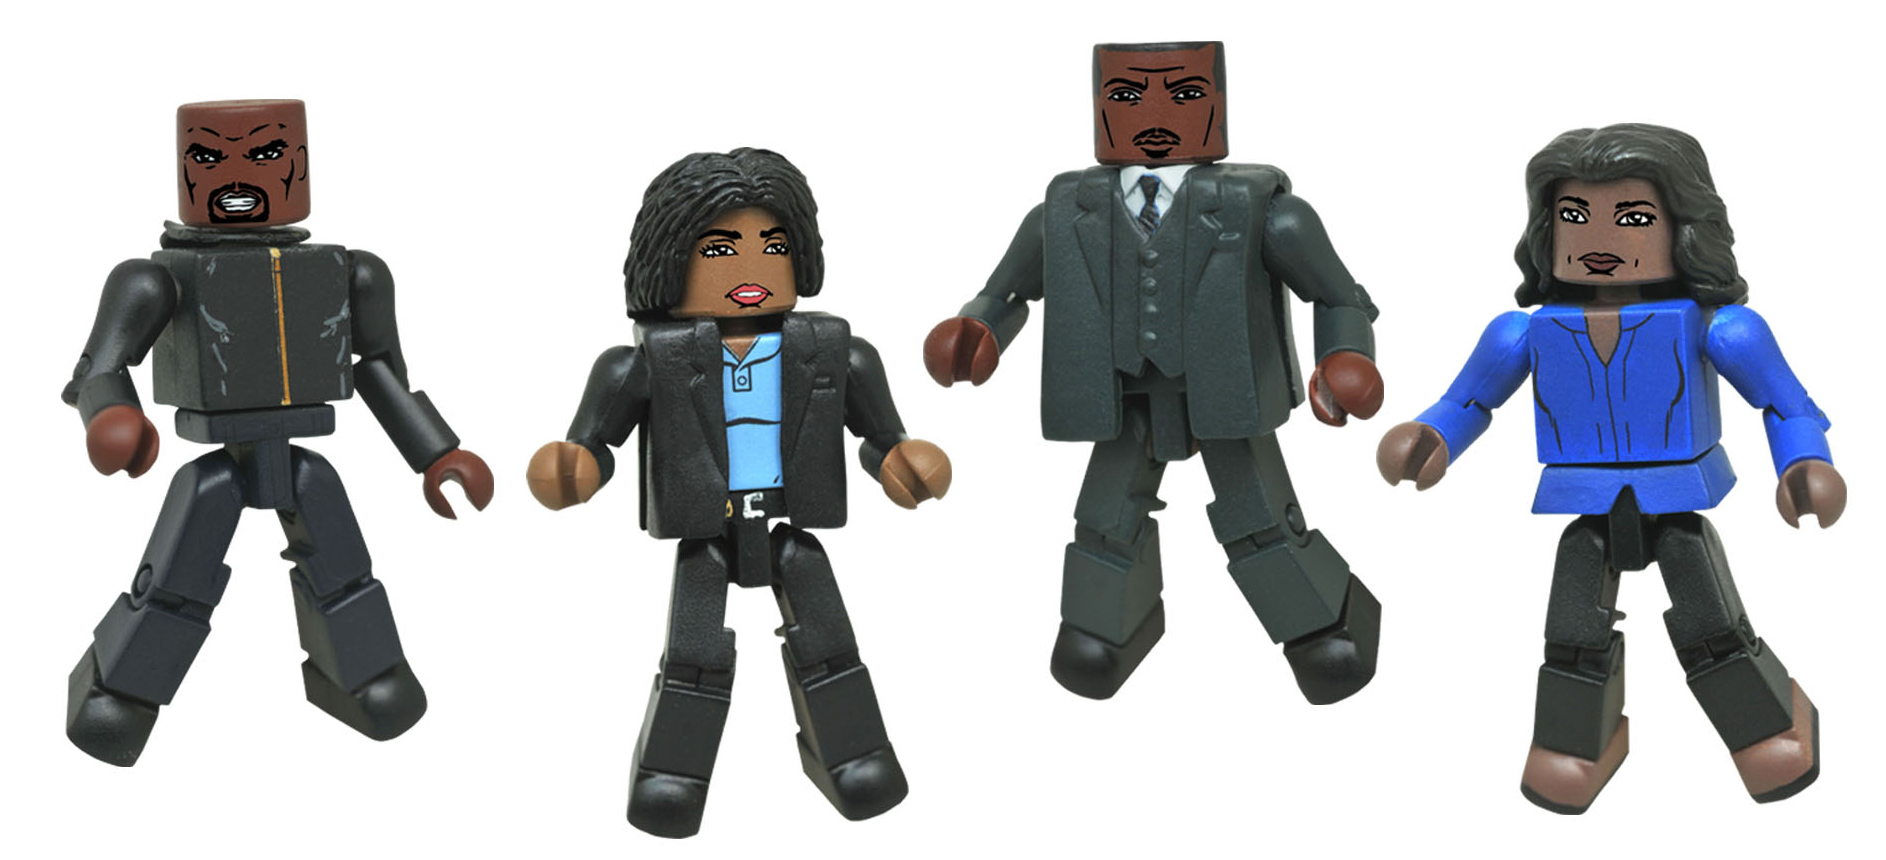 Luke Cage Netflix Minimates Series 1 Box Set